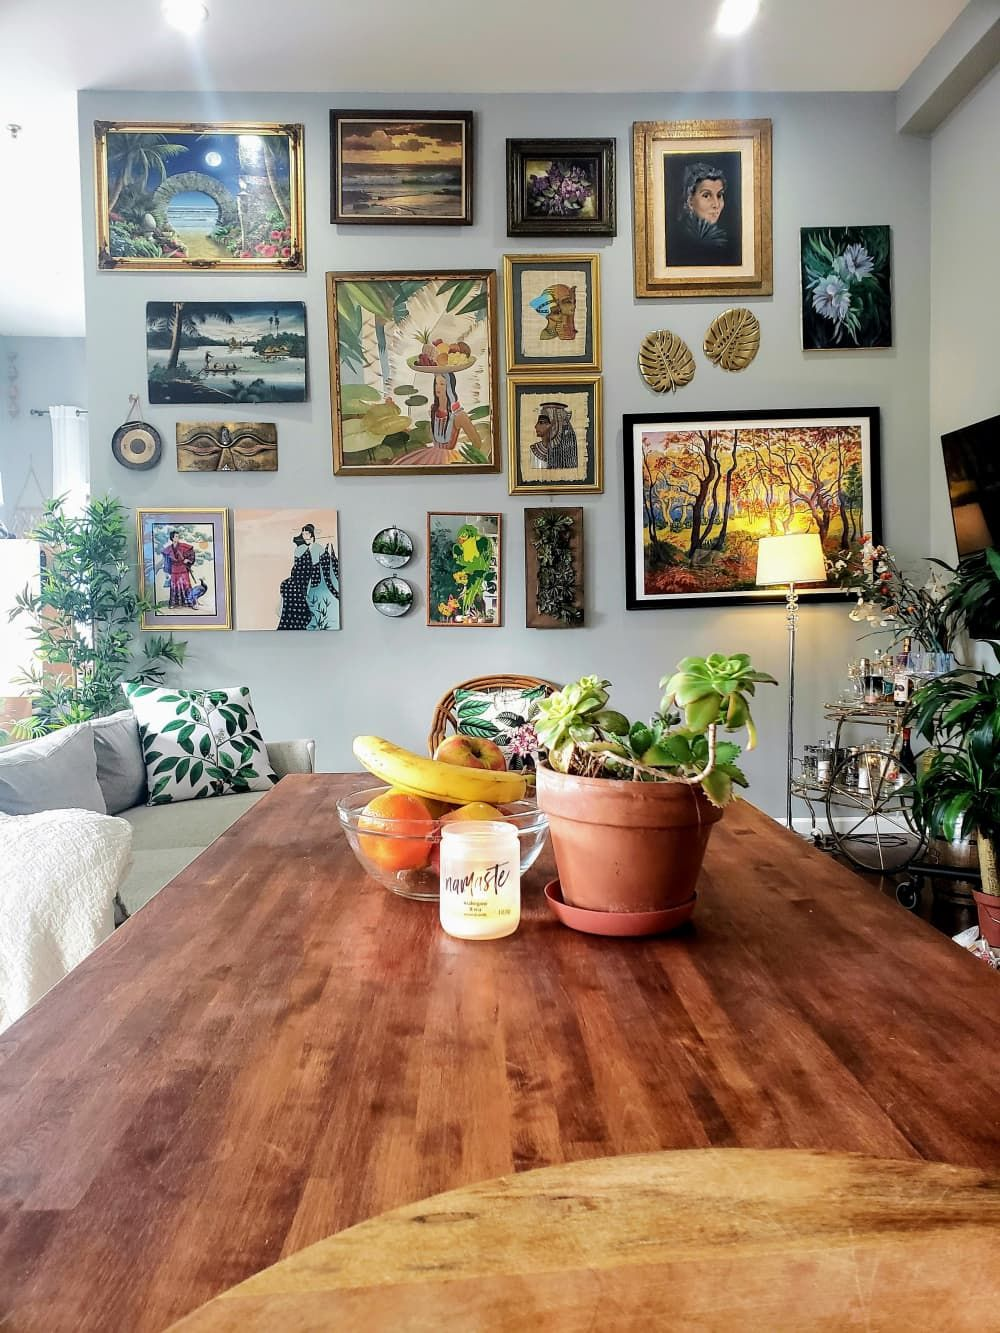 A Nyc Rental Was Furnished On A Budget Thanks To Street Finds And Facebook Marketplace Eclectic Gallery Wall Open Living Room Bohemian Apartment